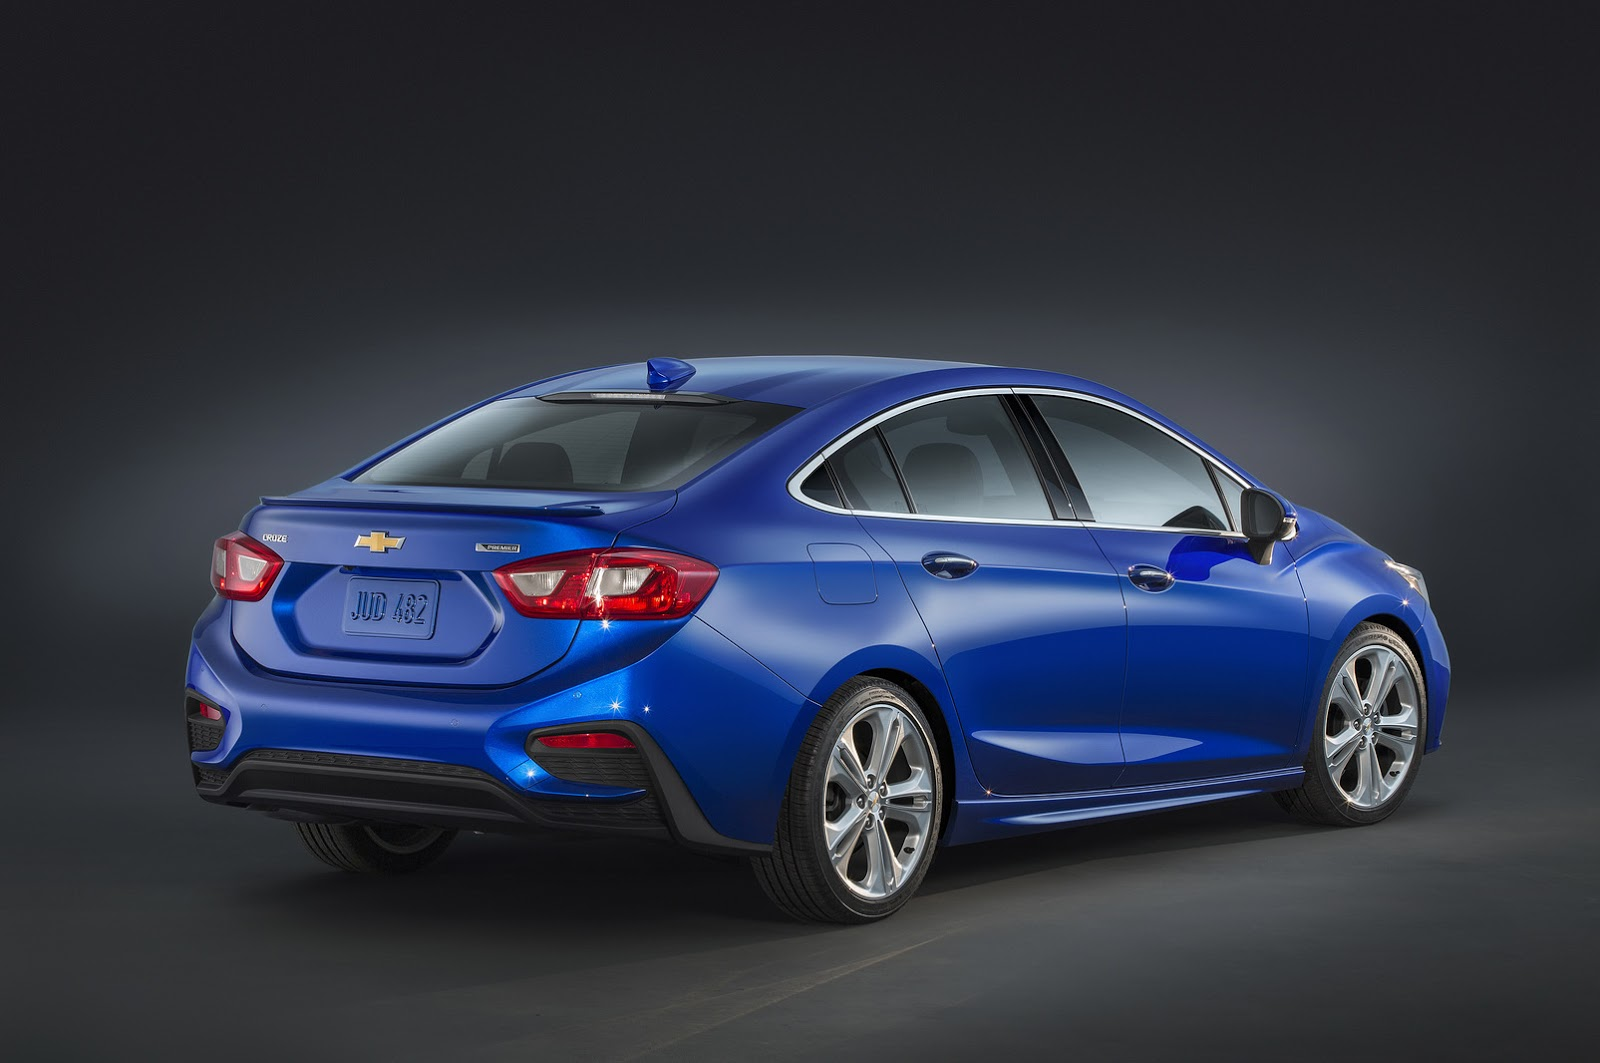 2016 chevy cruze sedan starts at 17 495 undercuts the civic by two grand autoevolution. Black Bedroom Furniture Sets. Home Design Ideas